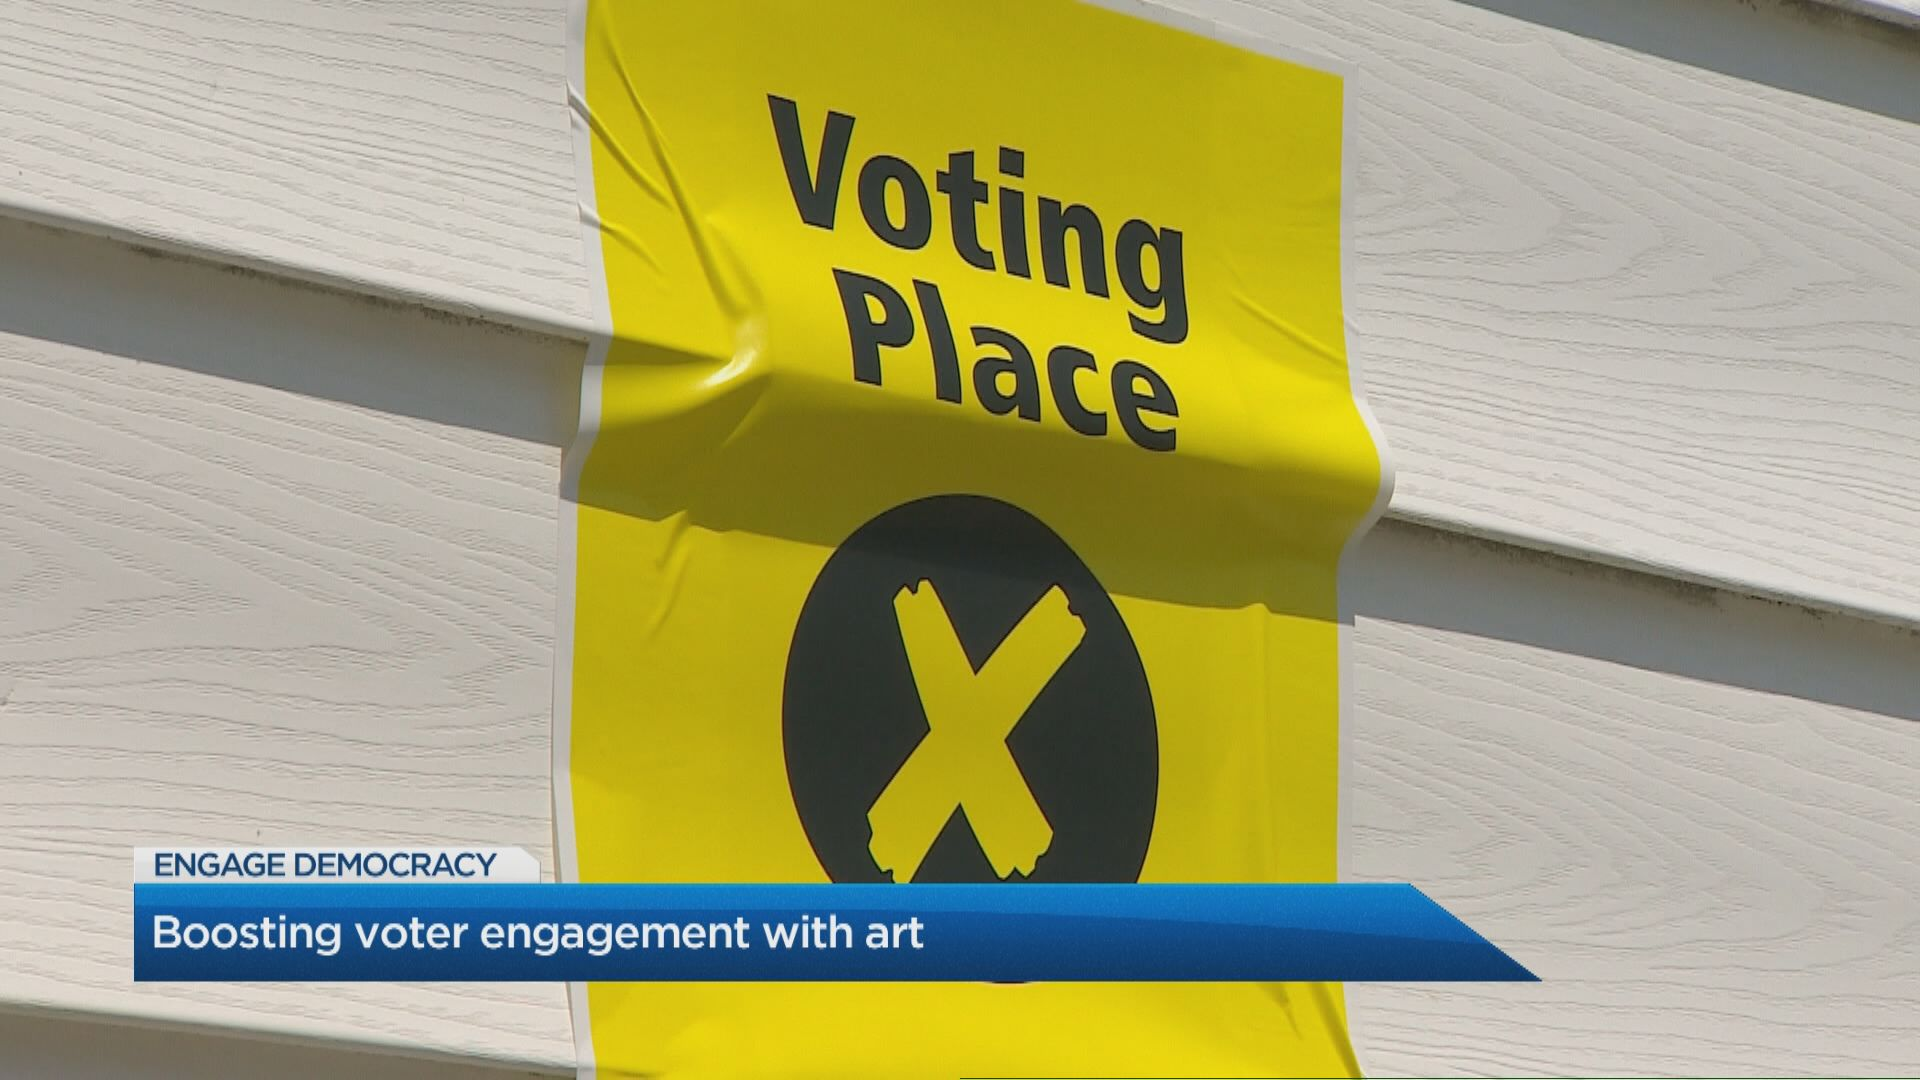 Boosting voter engagement with art